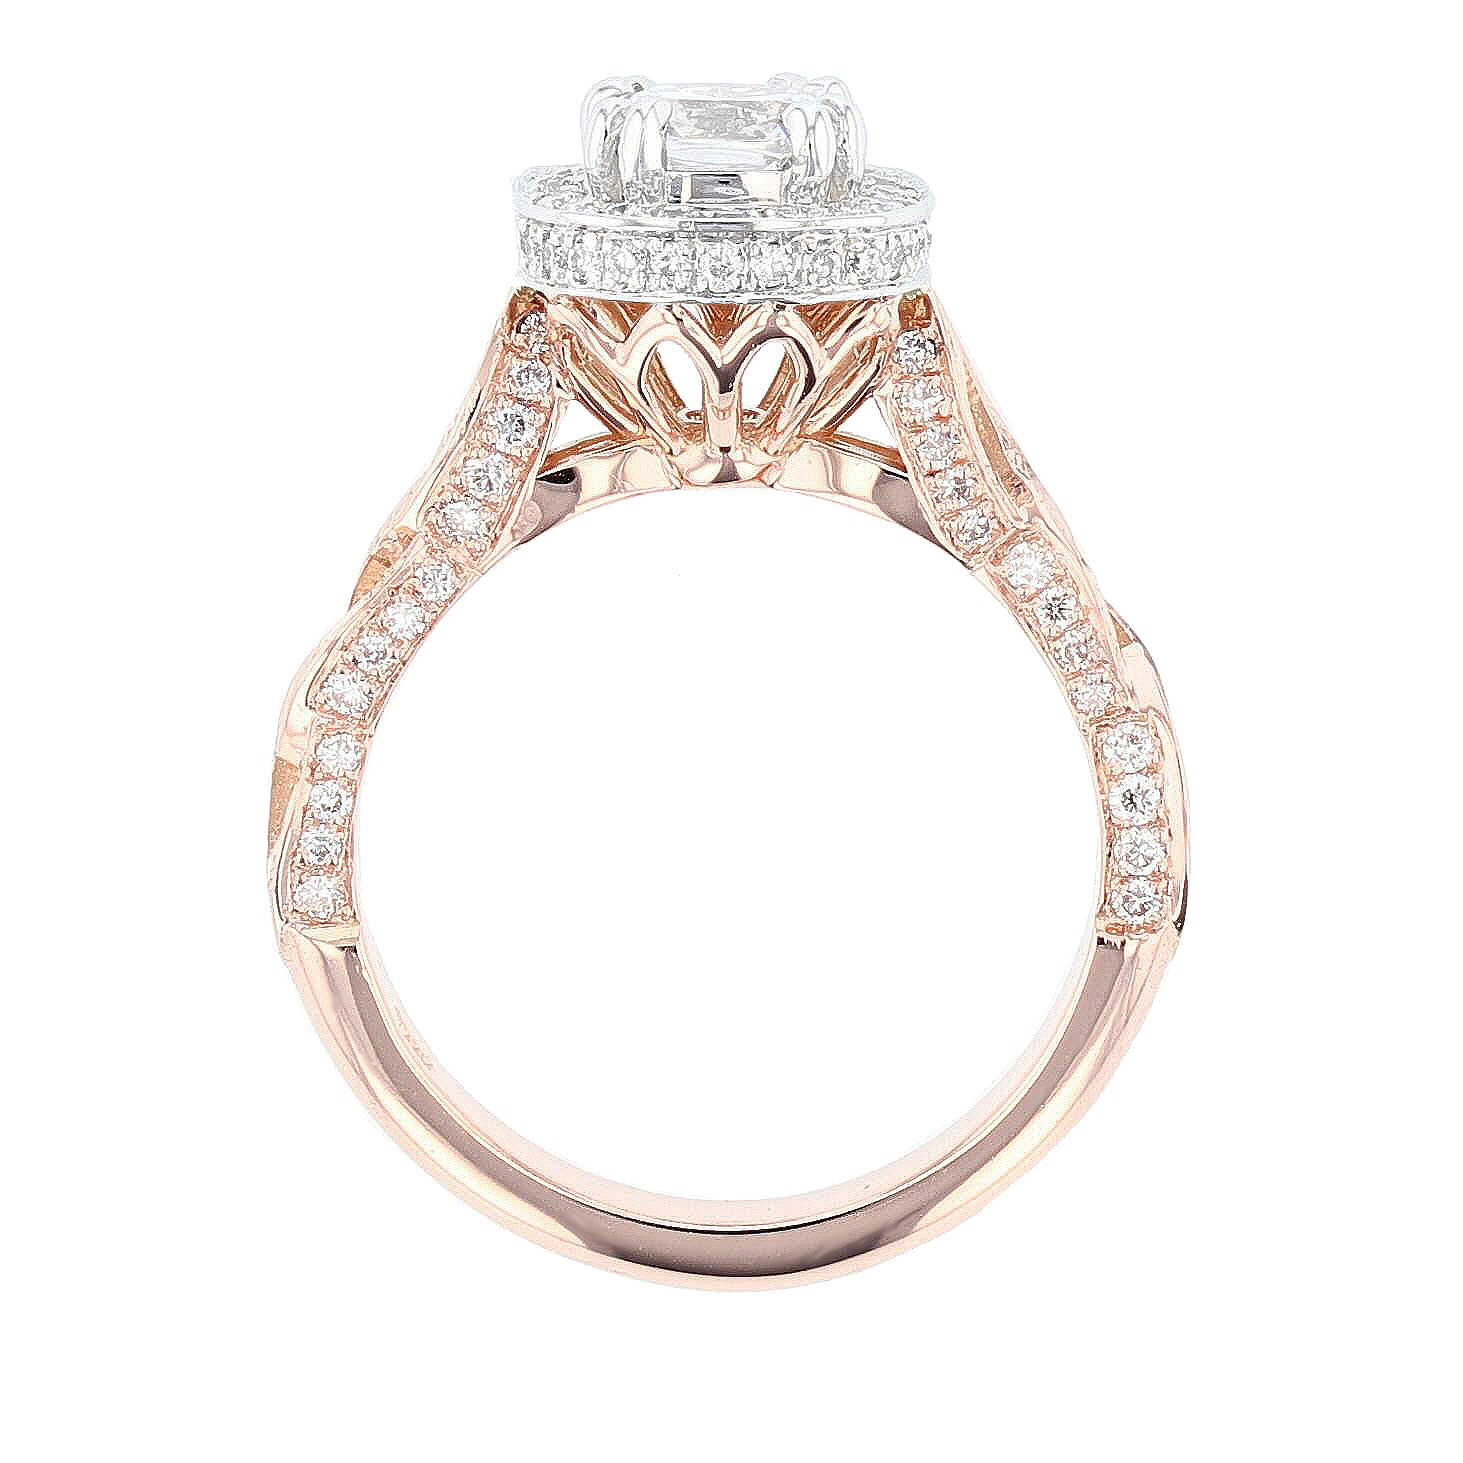 14K Rose and White Gold Cushion Halo Diamond Engagement Ring - Nazarelle